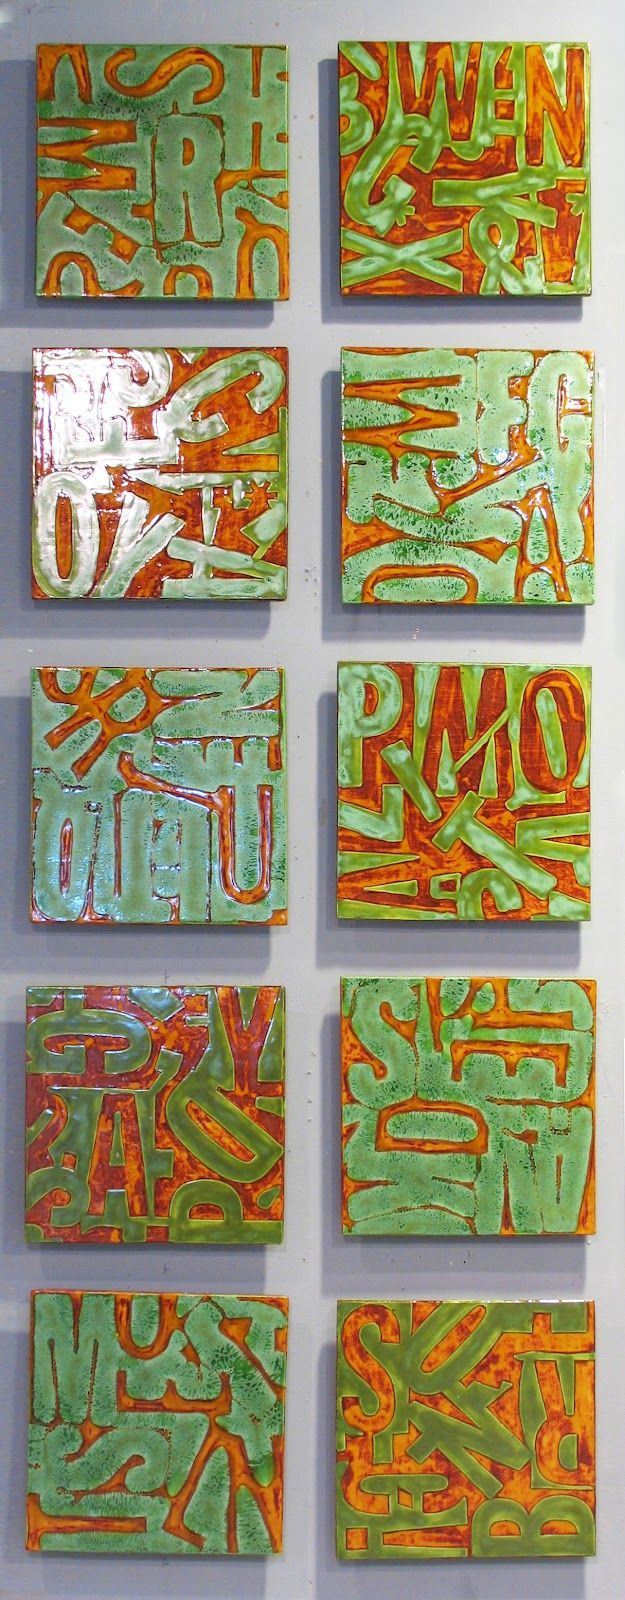 inspires: twist on Jasper Johns, print with foam letters assembled on tagboard square, student's name mixed up, make mixed media piece from printing plate